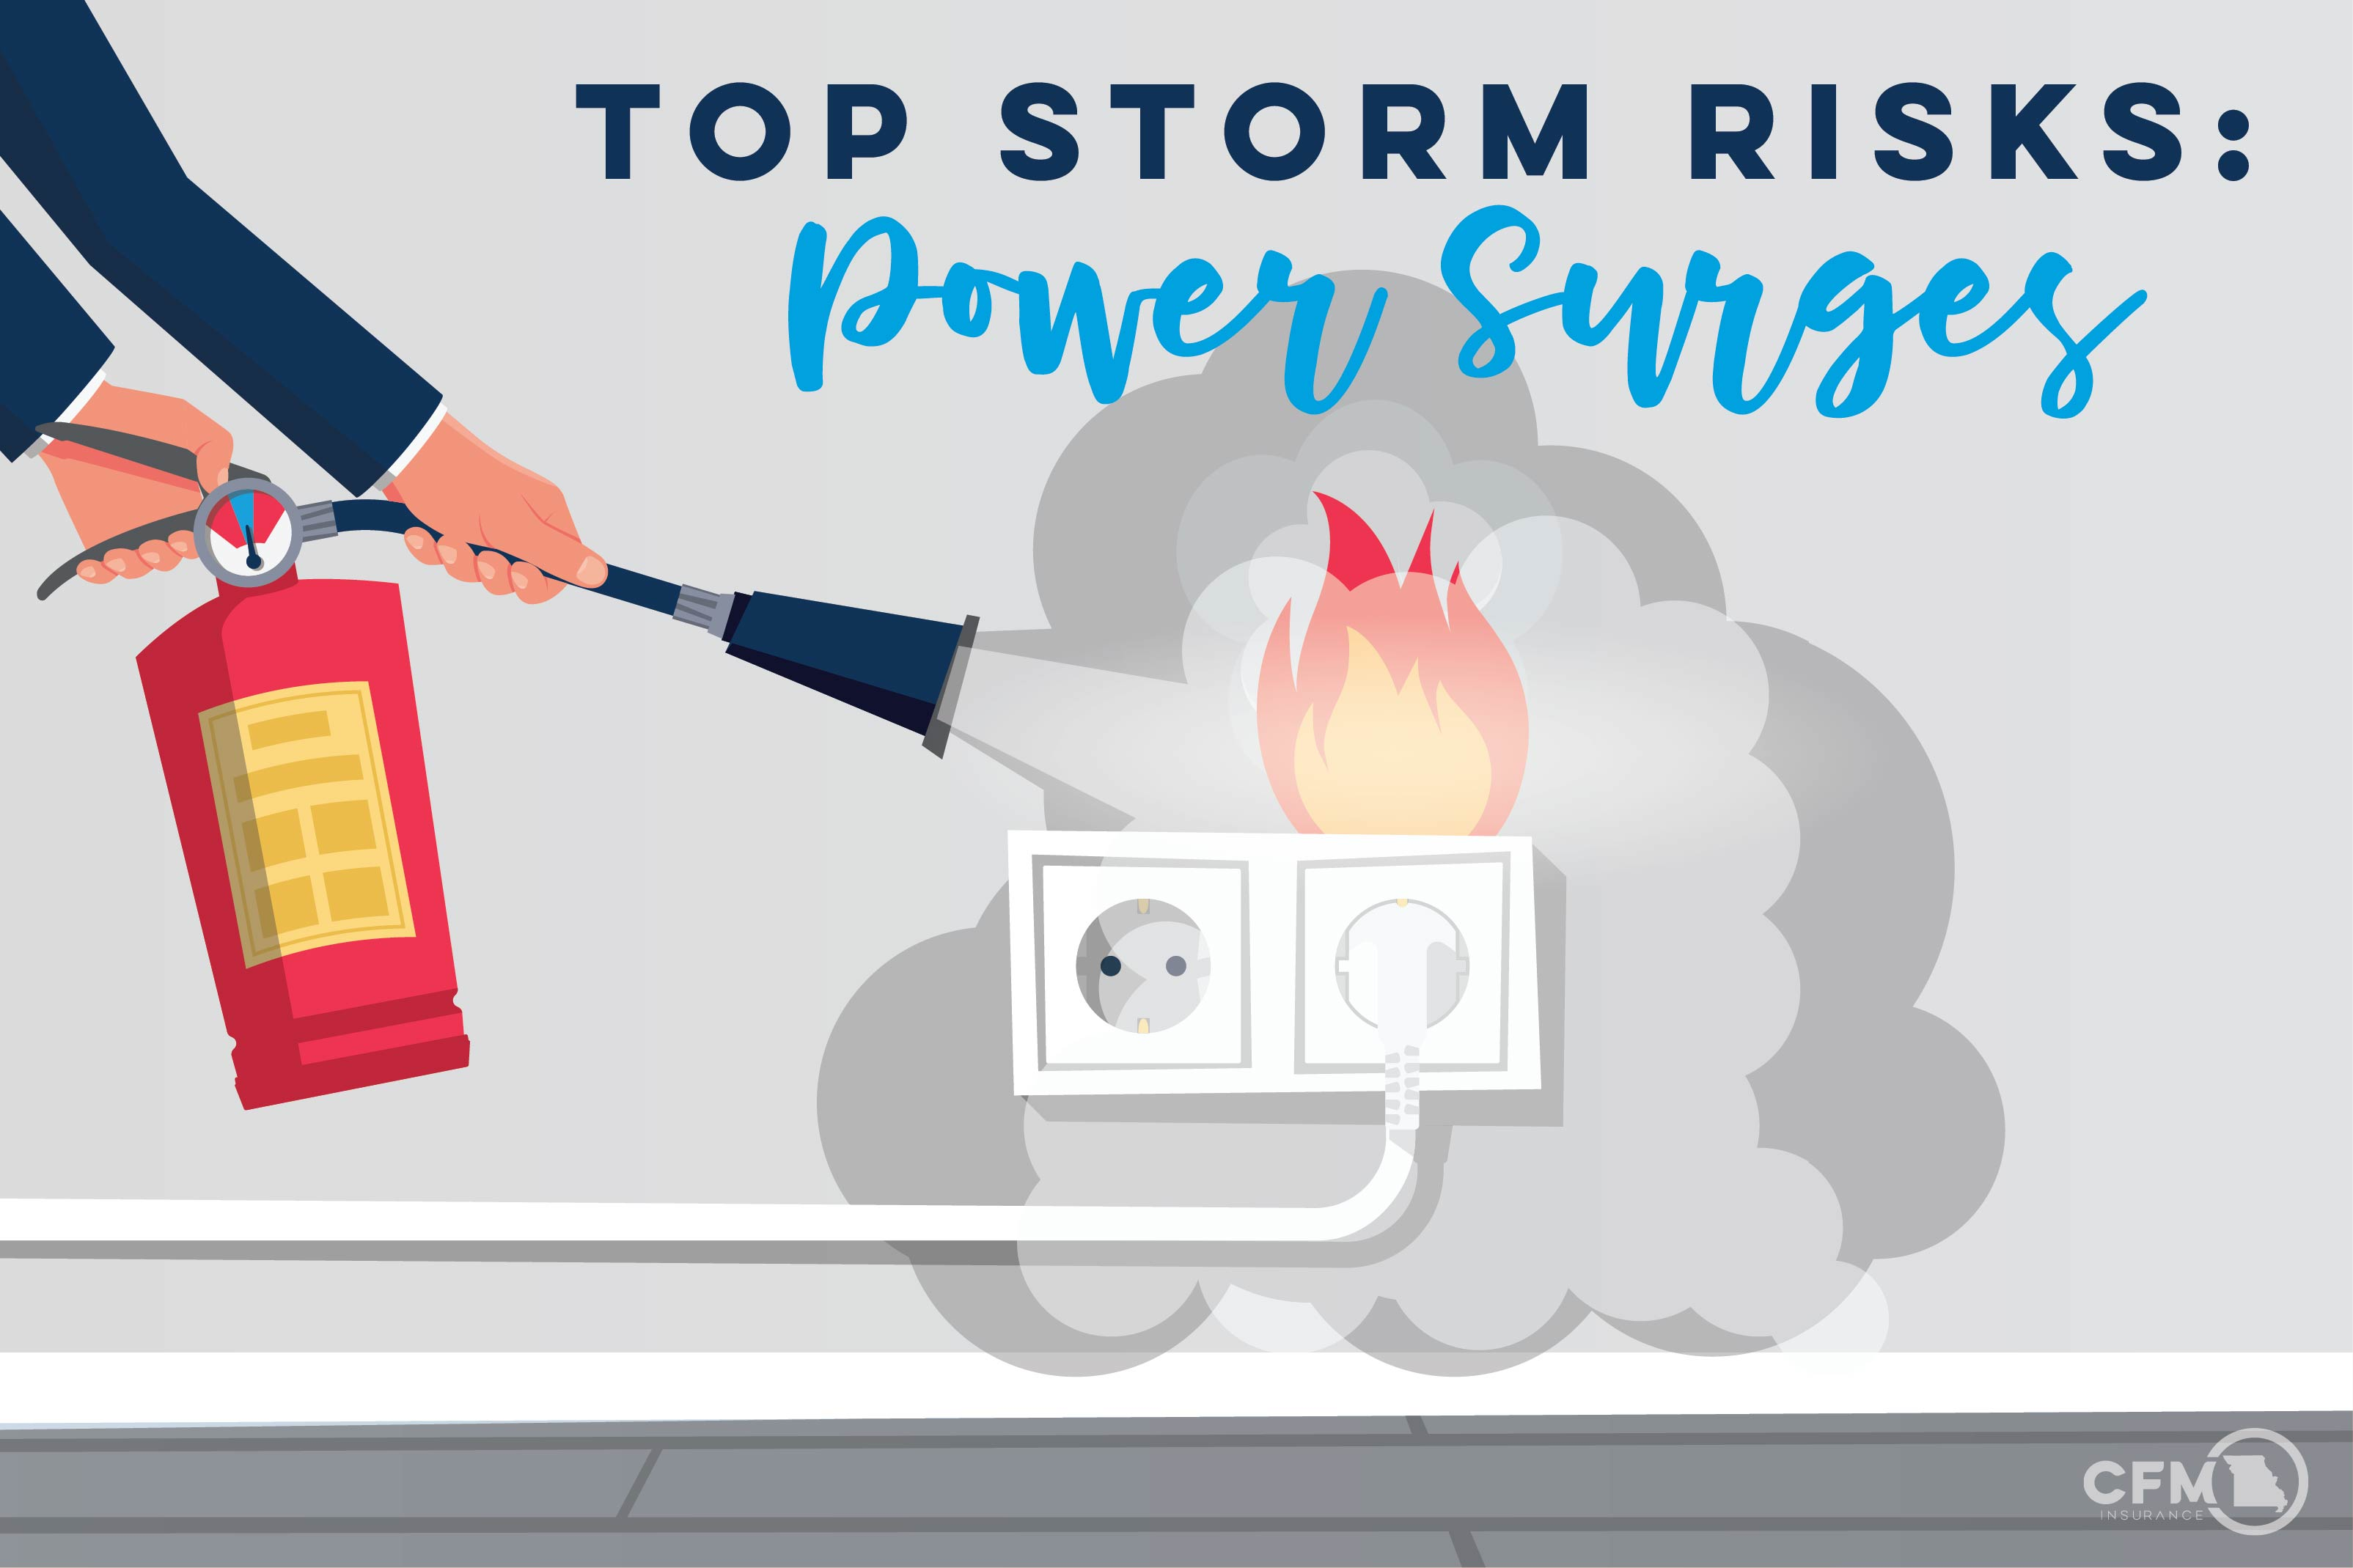 3. 4301_Top Storm Risks_Power Surge_Bog-01